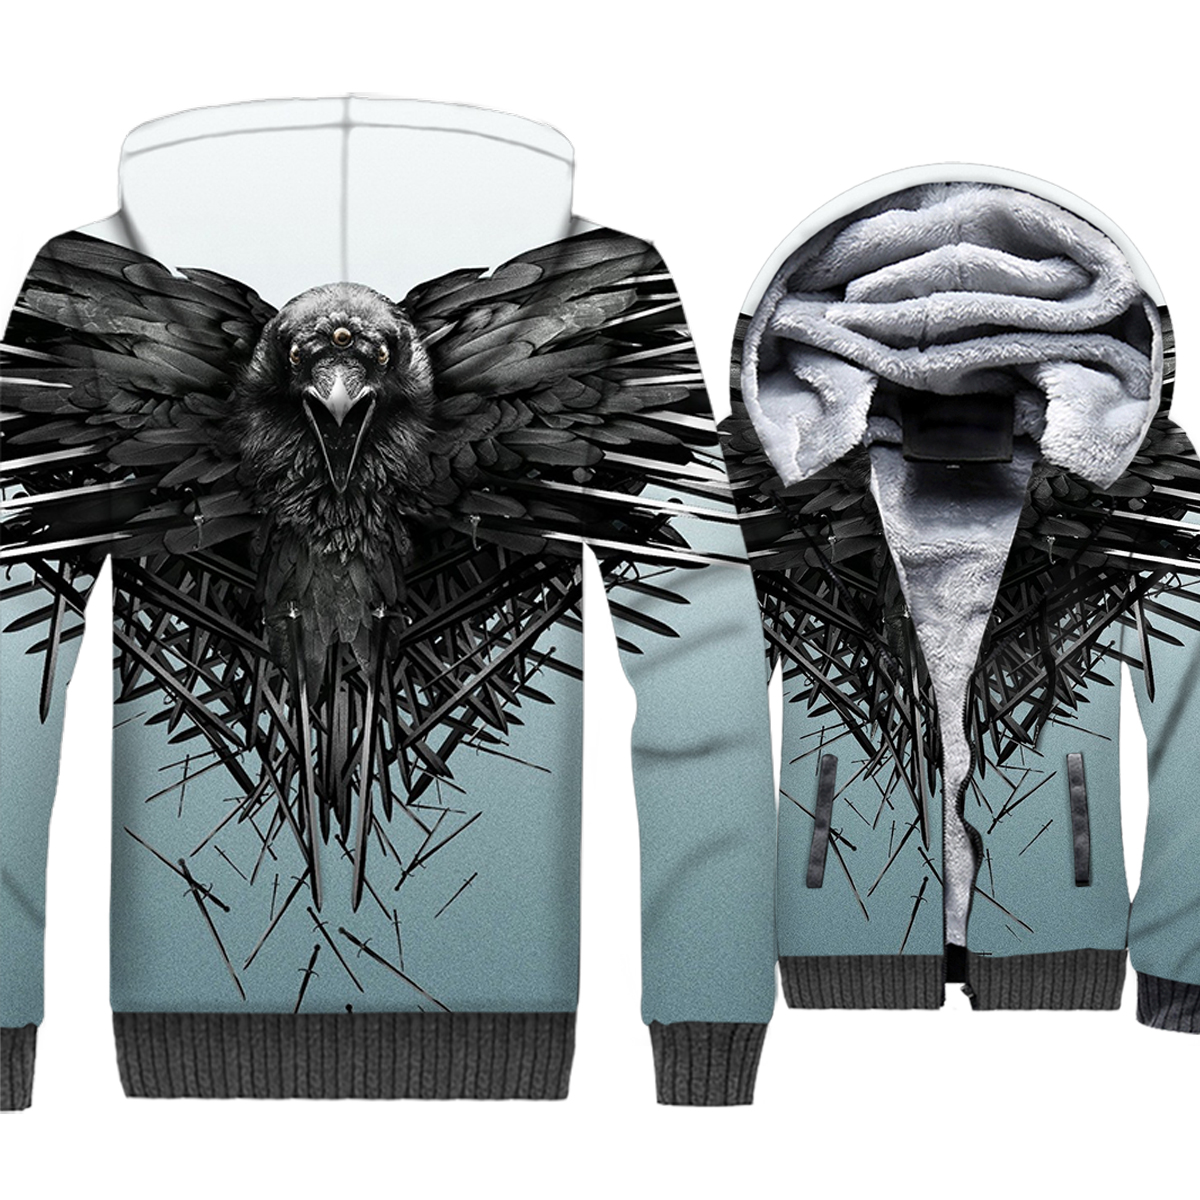 Game Of Thrones 3D Jacket Hoody 2018 Autmn Winter Fashion Thick Sweatshirt Men Three-eyed Crow Hip Hop Streetwear Men's Hoodies